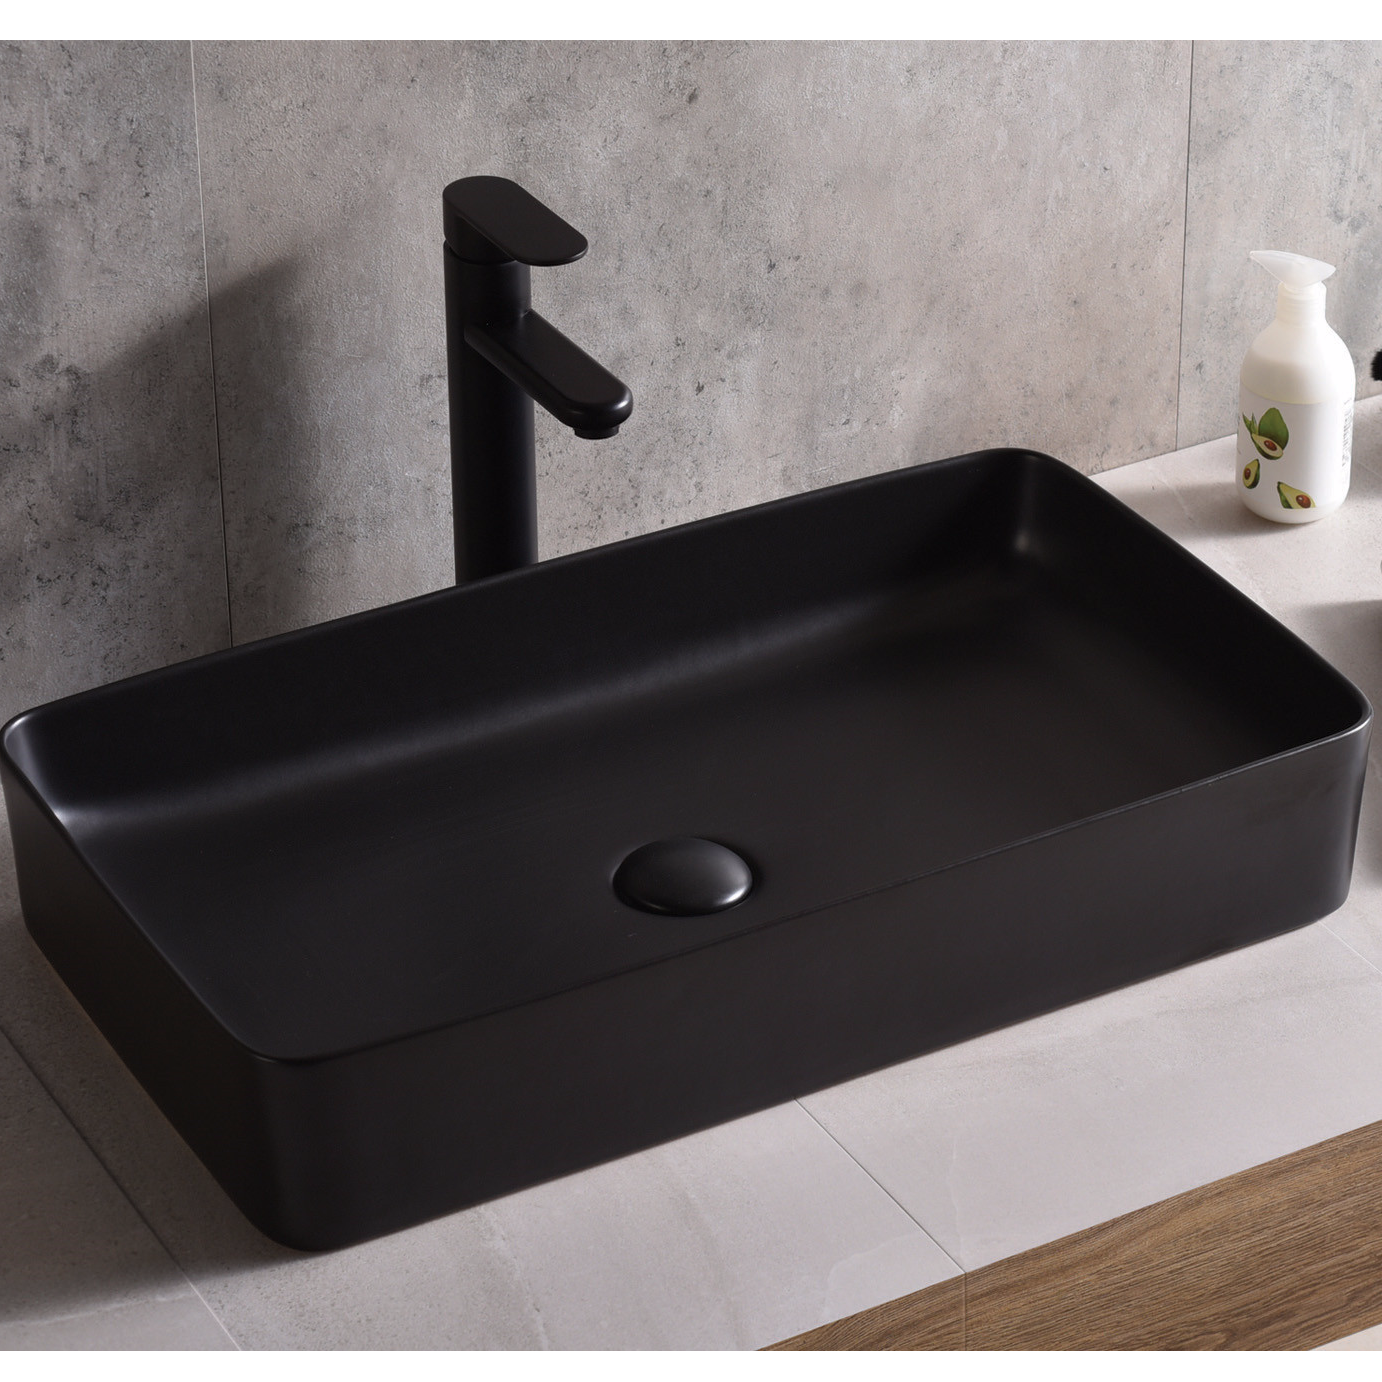 Hot selling designs Pure black high temperature ceramic table basin from Promise Art basin